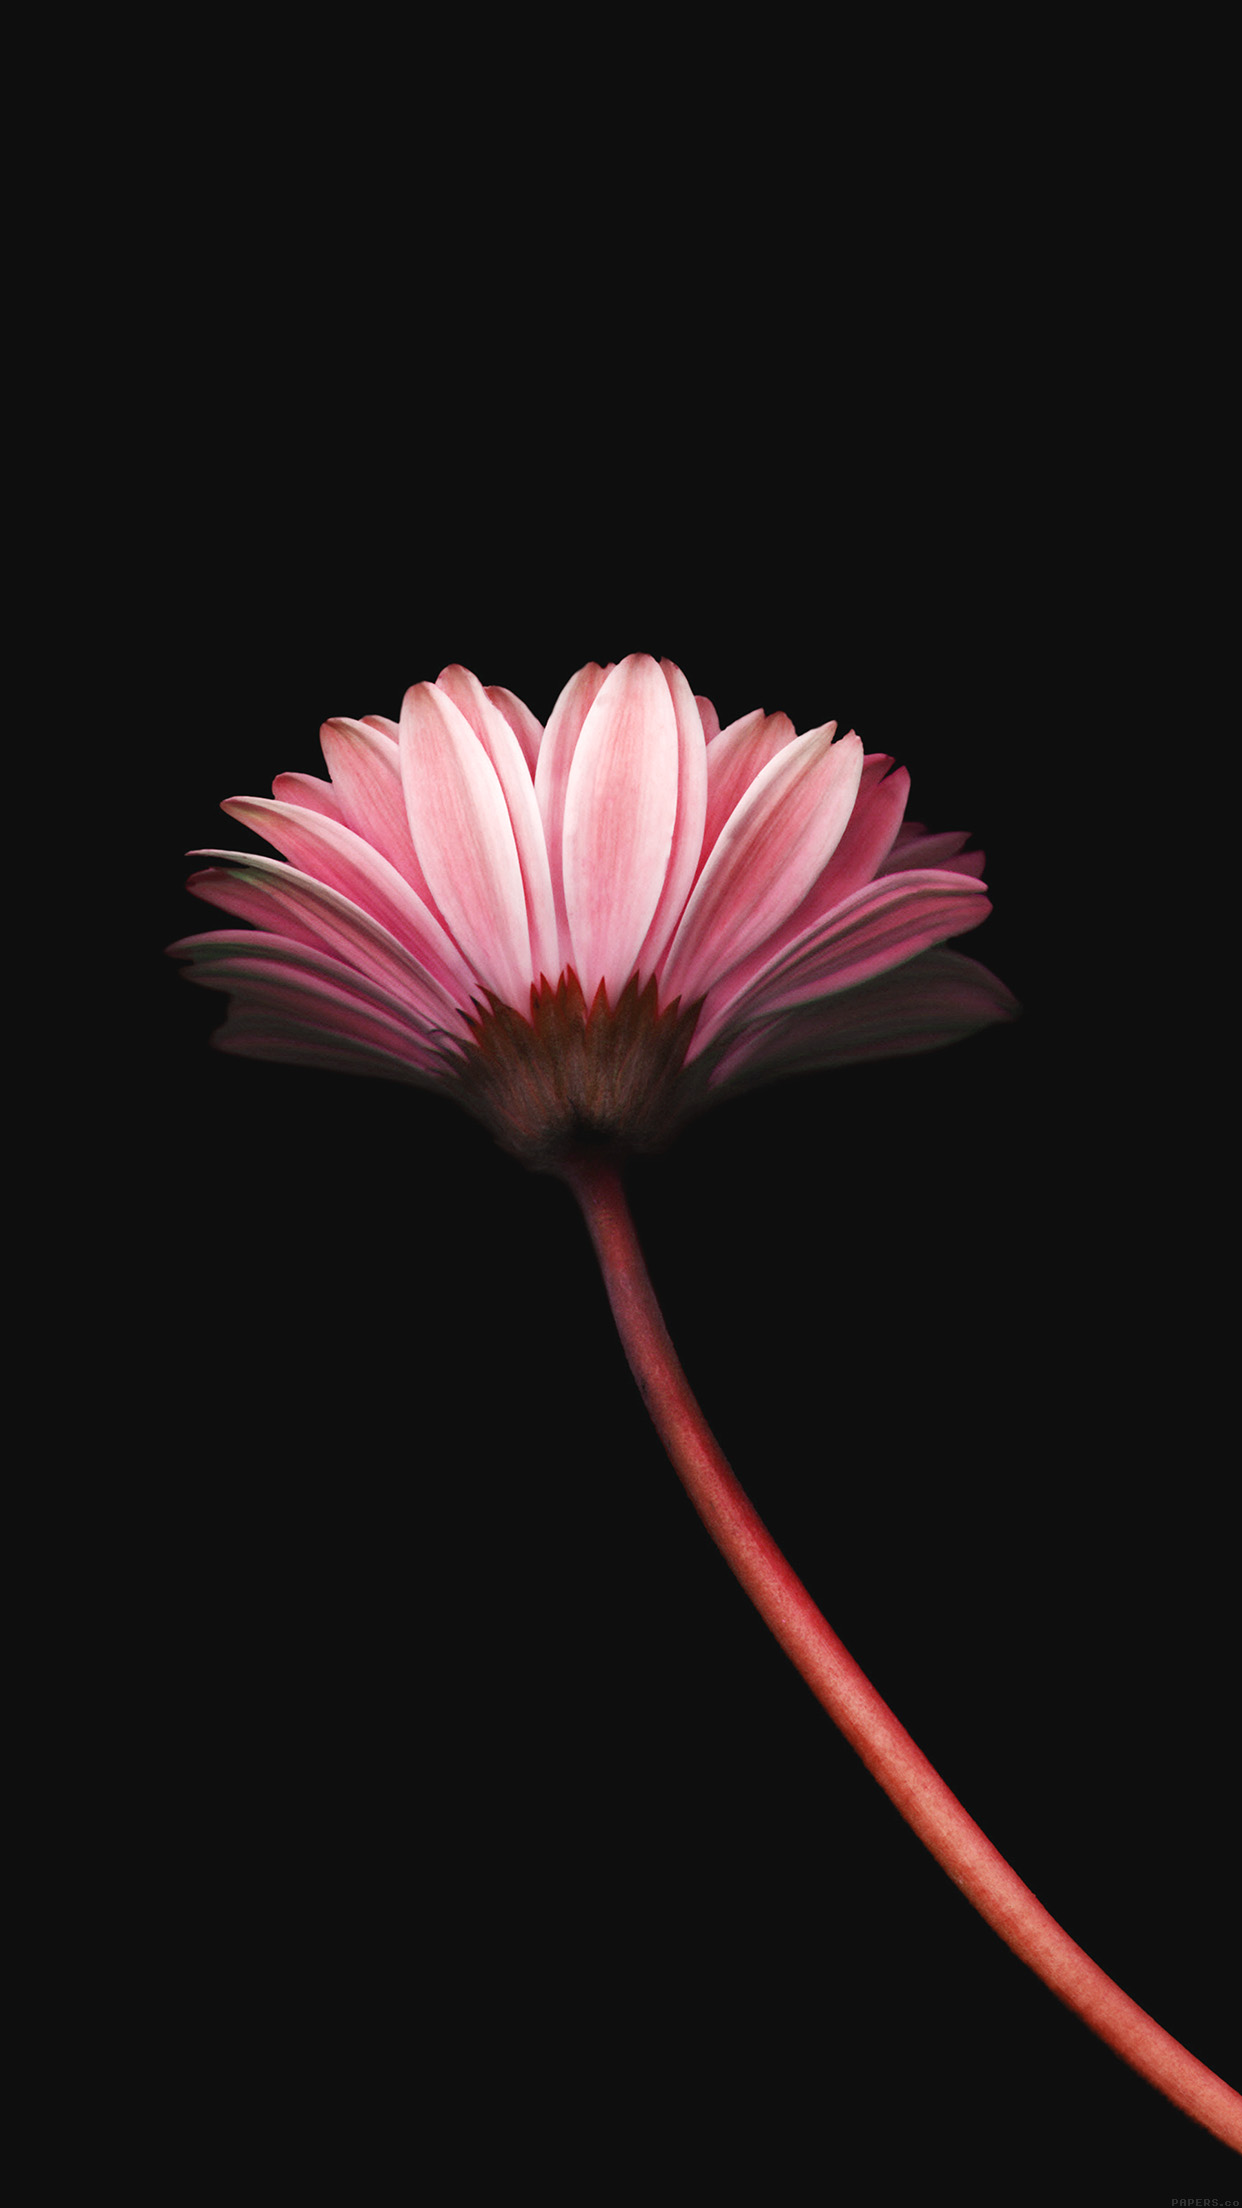 Lonely Flower Dark Red Simple Minimal Nature Android wallpaper